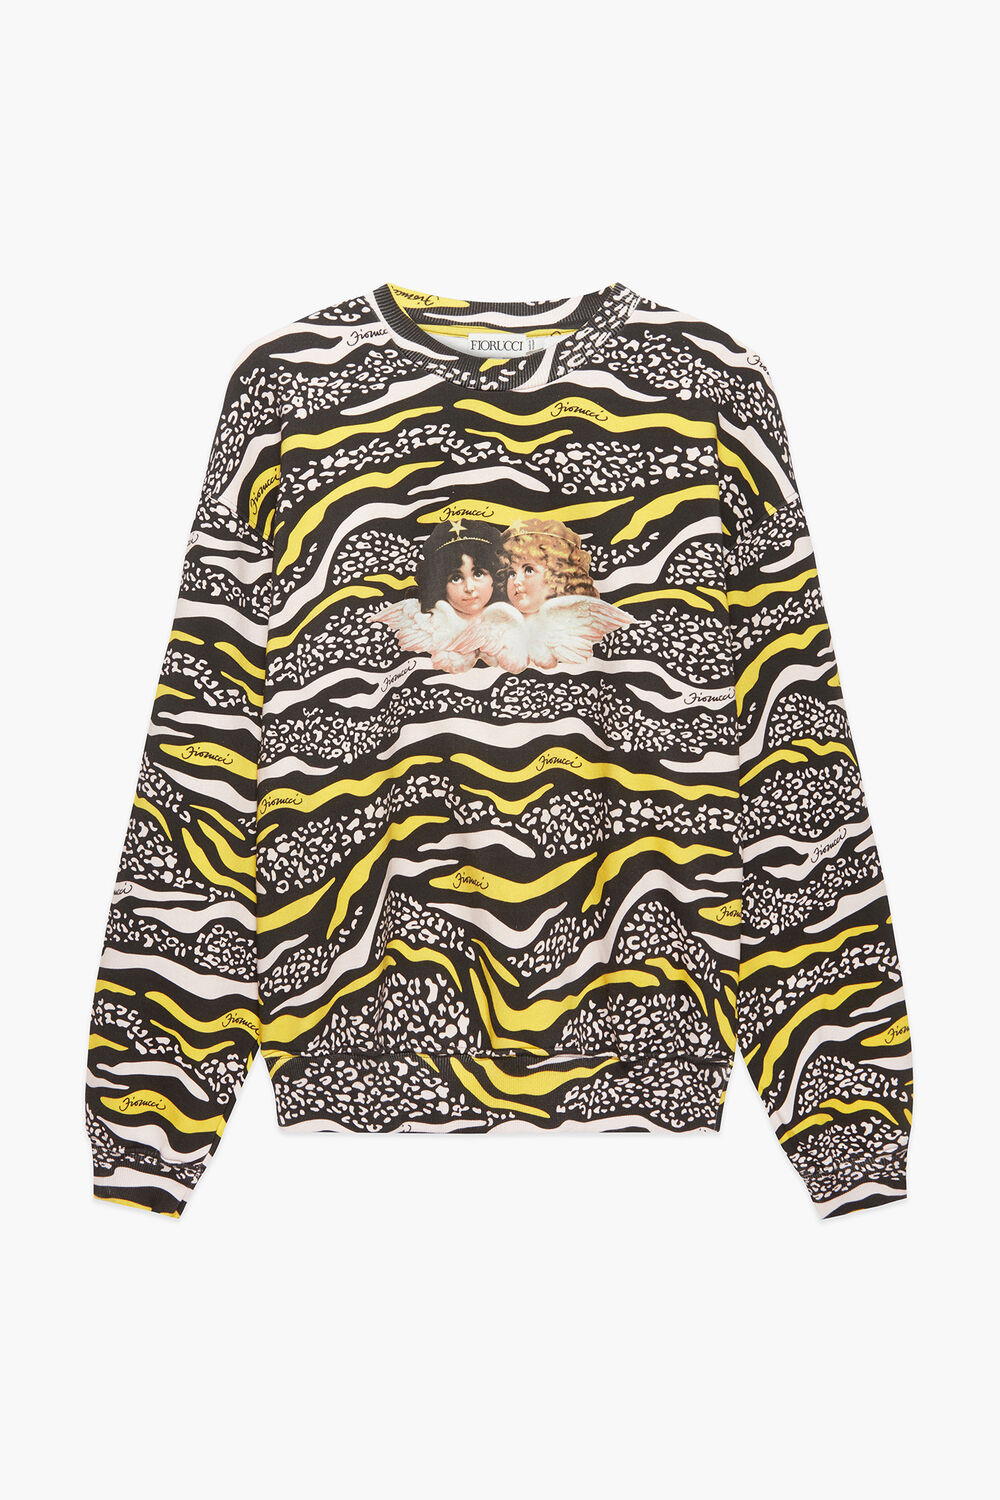 Angels Sweatshirt Wildlife Print